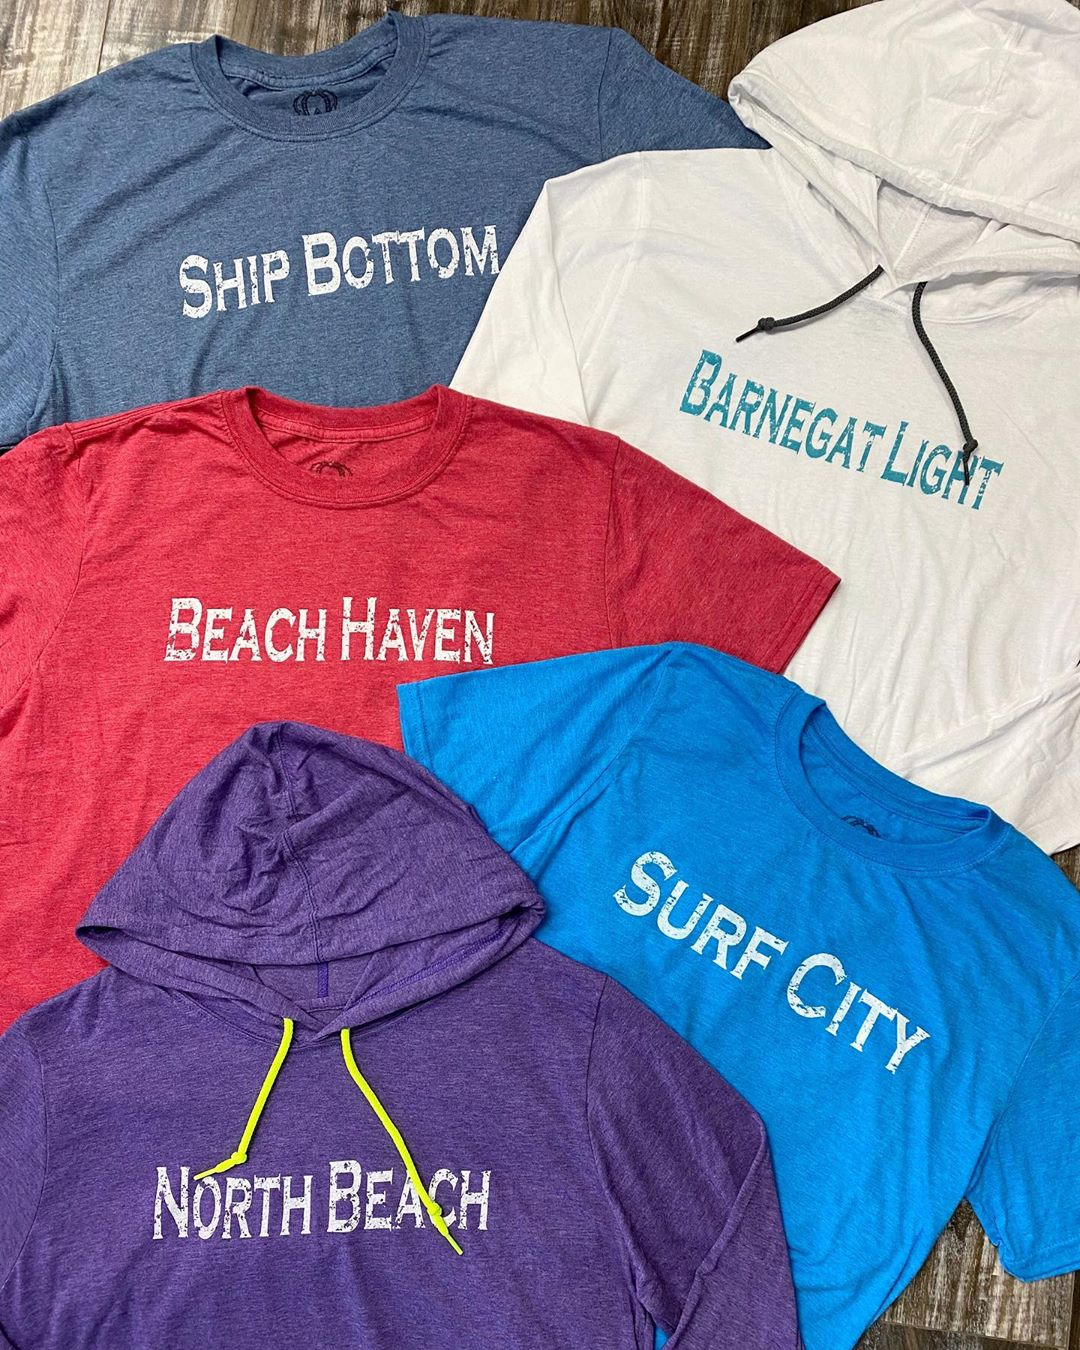 LBI Shop town T's in-store and online ! We're open Friday & Saturday 10-6, Sunday 10…